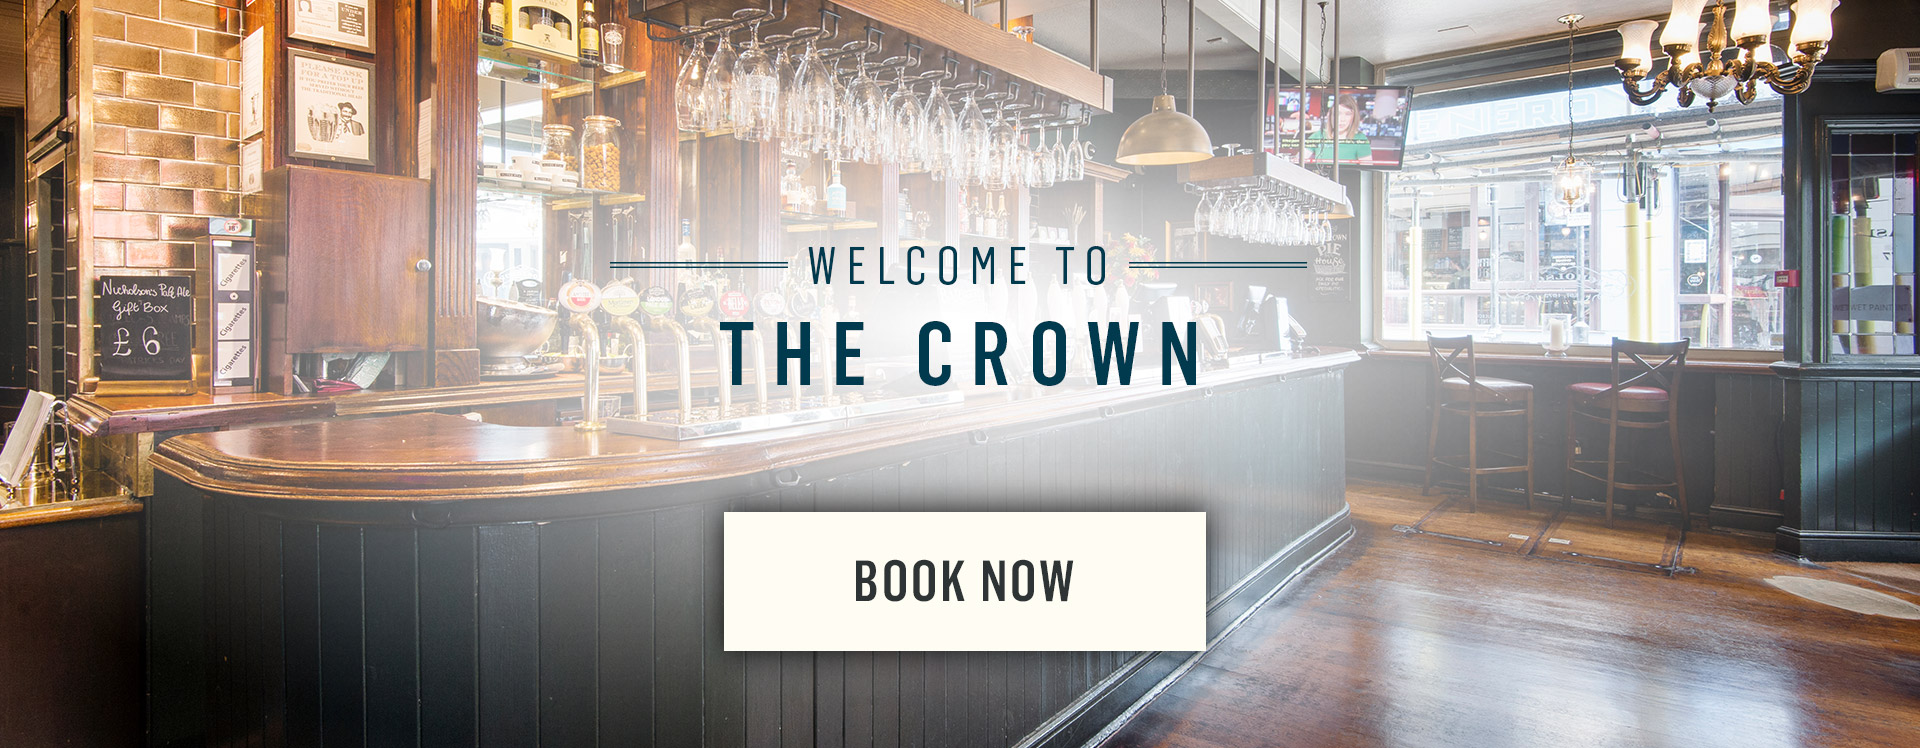 Welcome to The Crown - Book Now